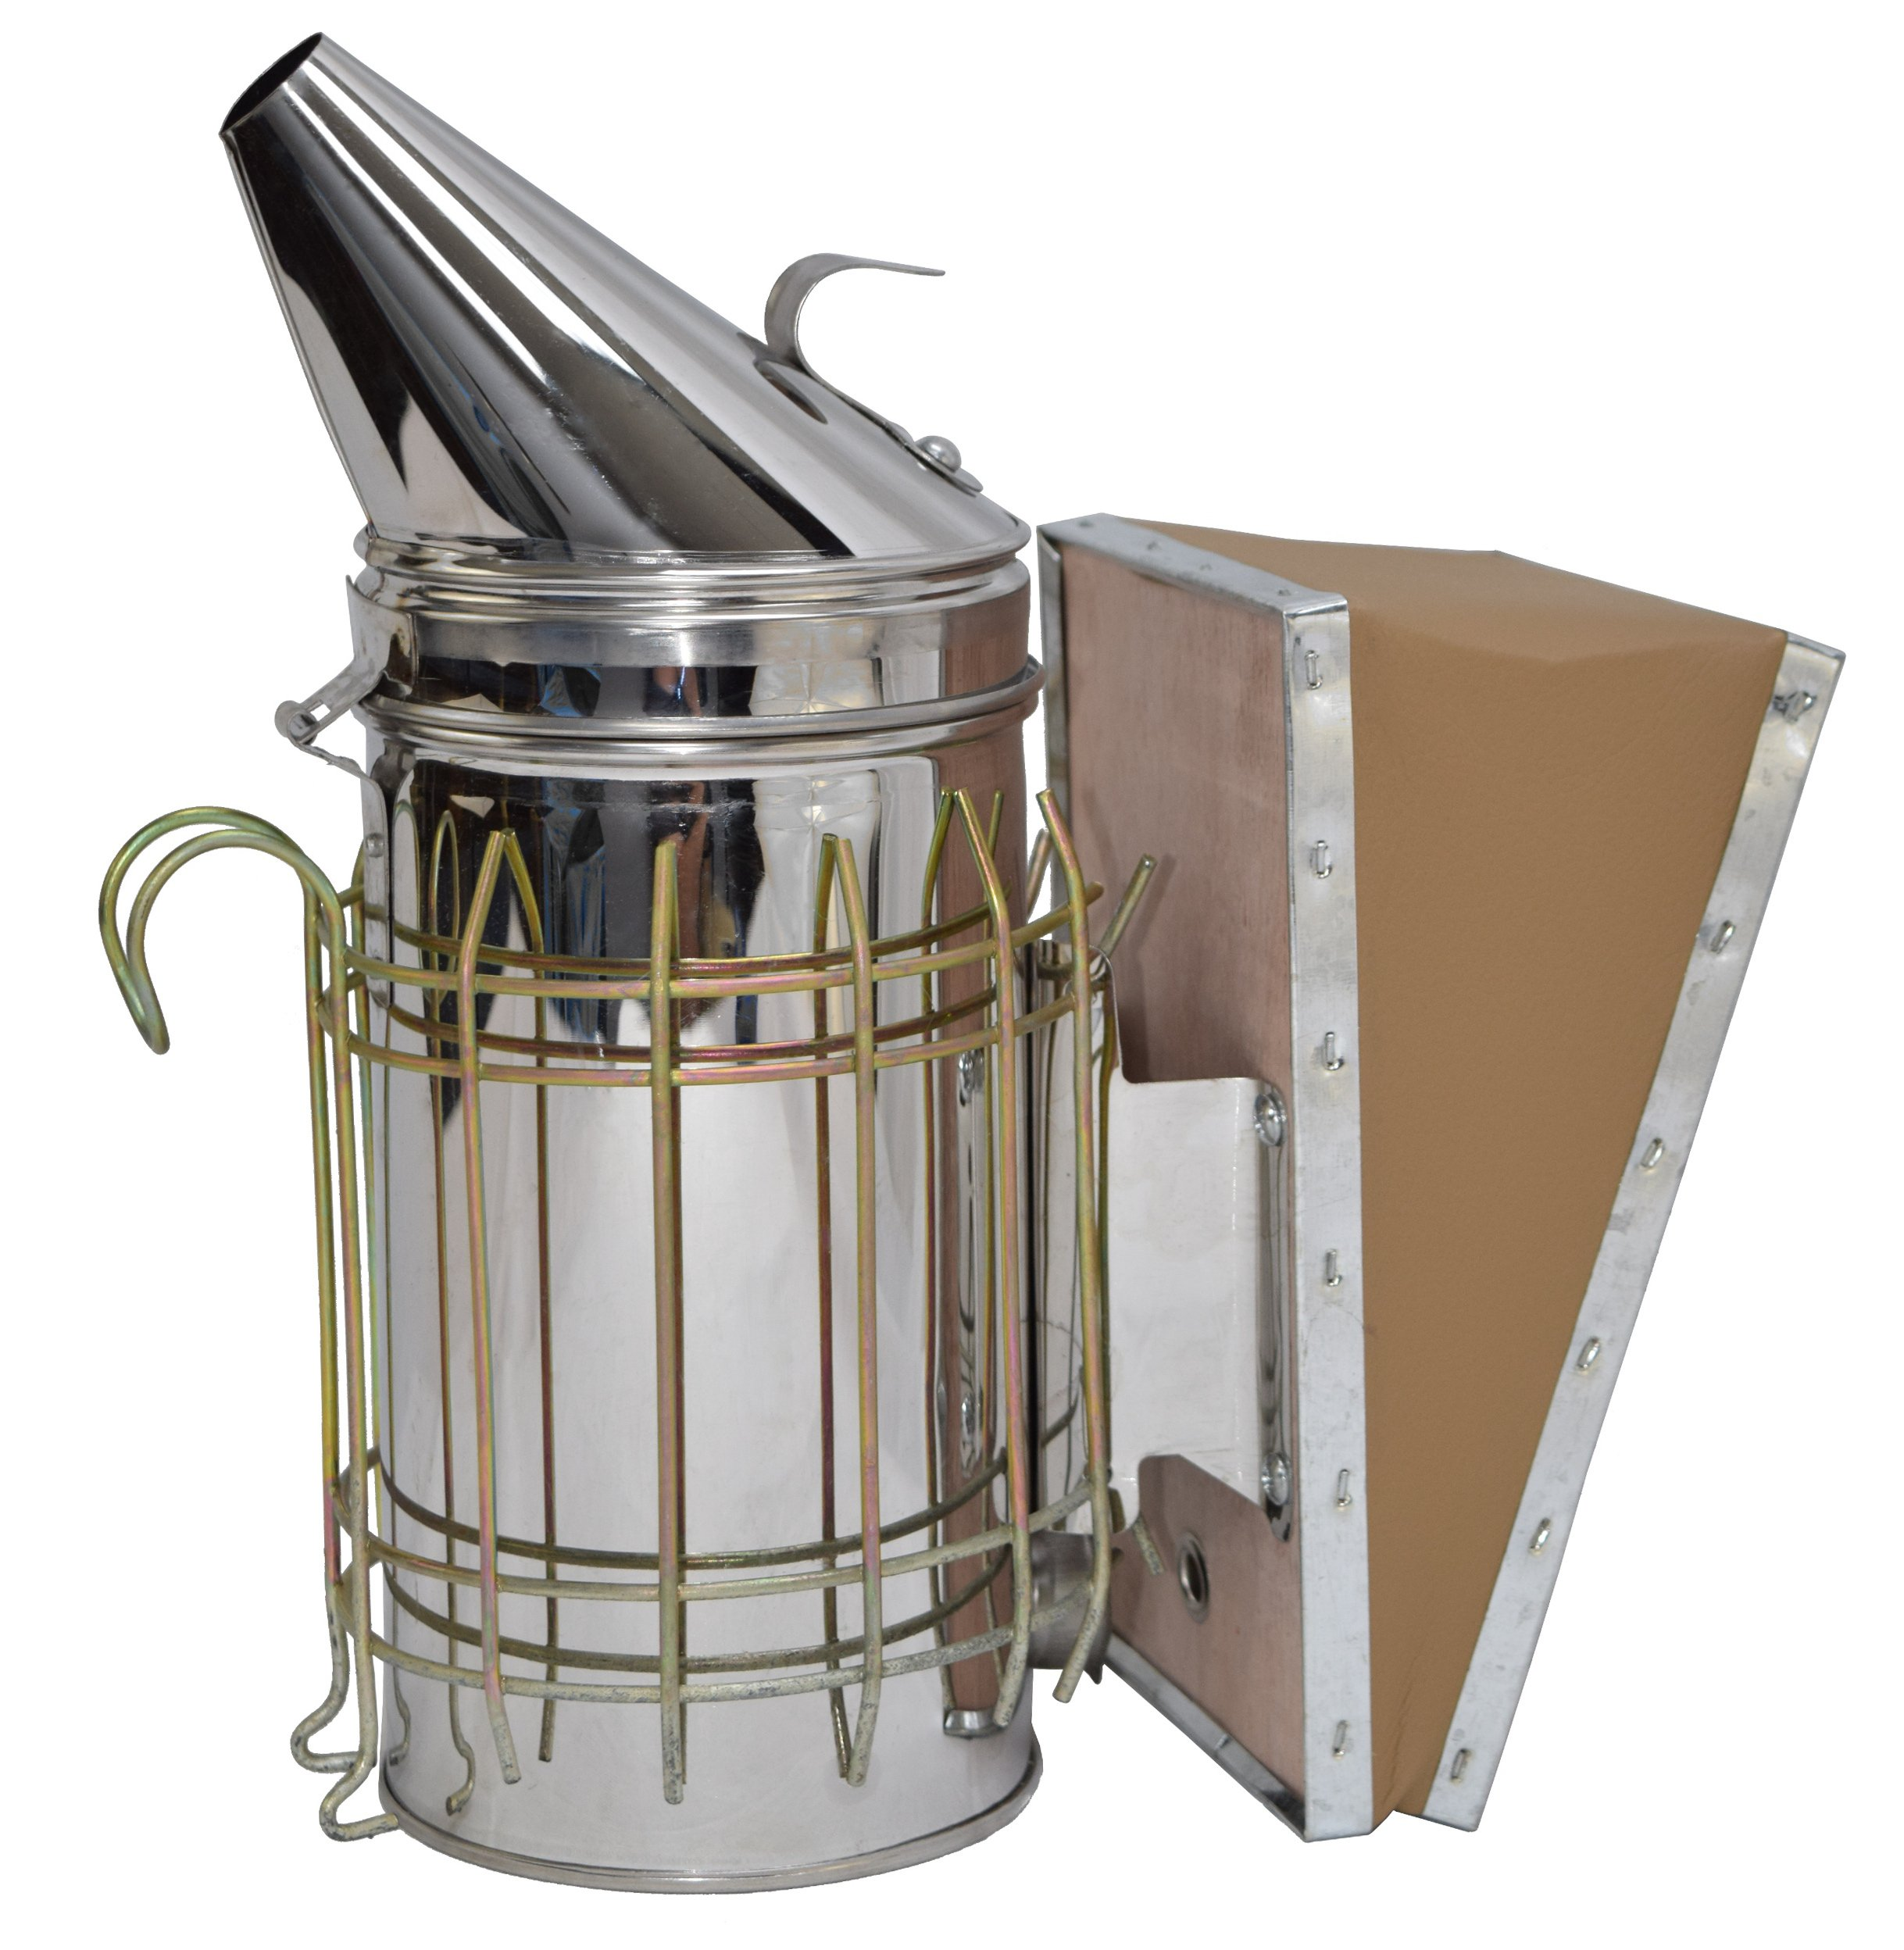 VIVO Stainless Steel Bee Hive Smoker with Heat Shield | Beekeeping Equipment (BEE-V001) by VIVO